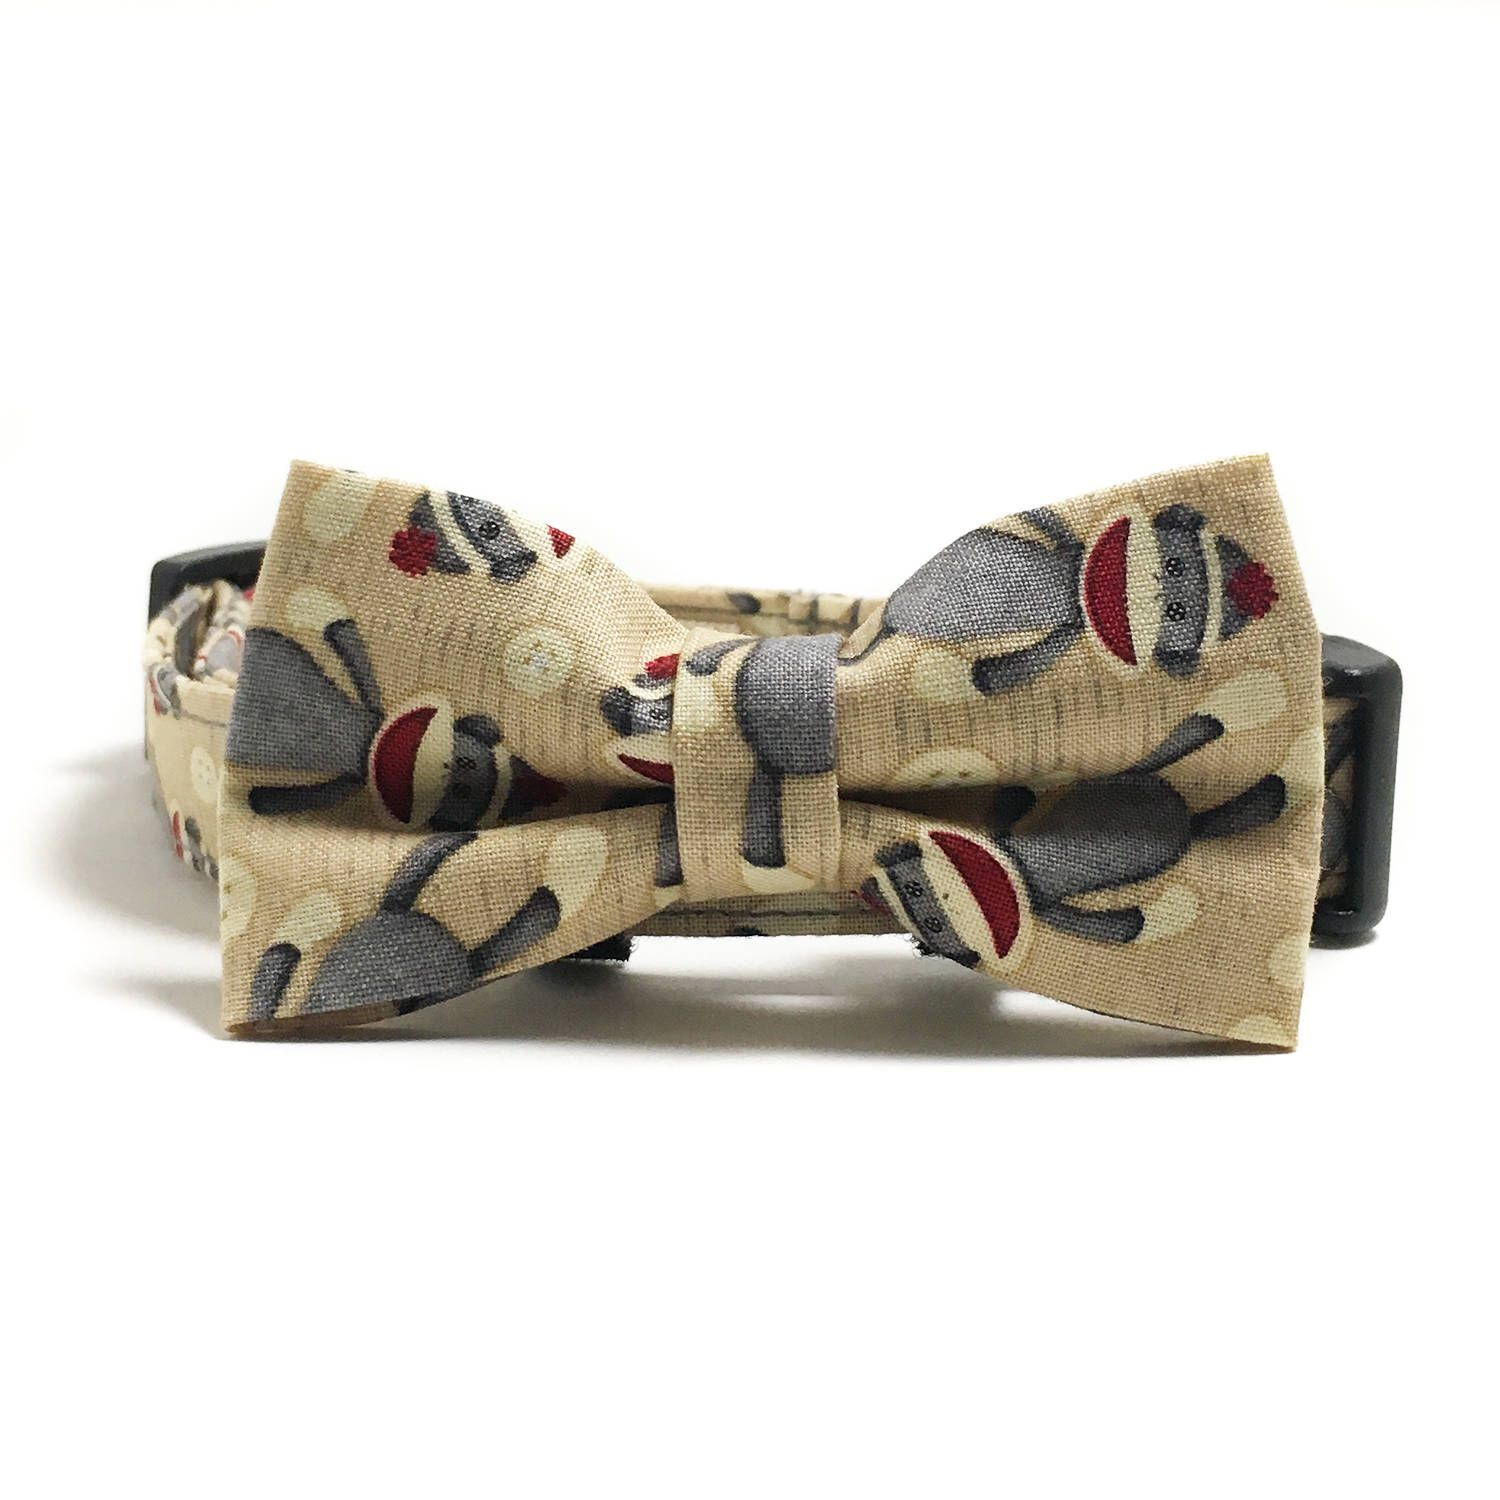 Great Collar Bow Adorable Dog - 950140726a33fa42e798094ad772c10a  2018_605782  .jpg